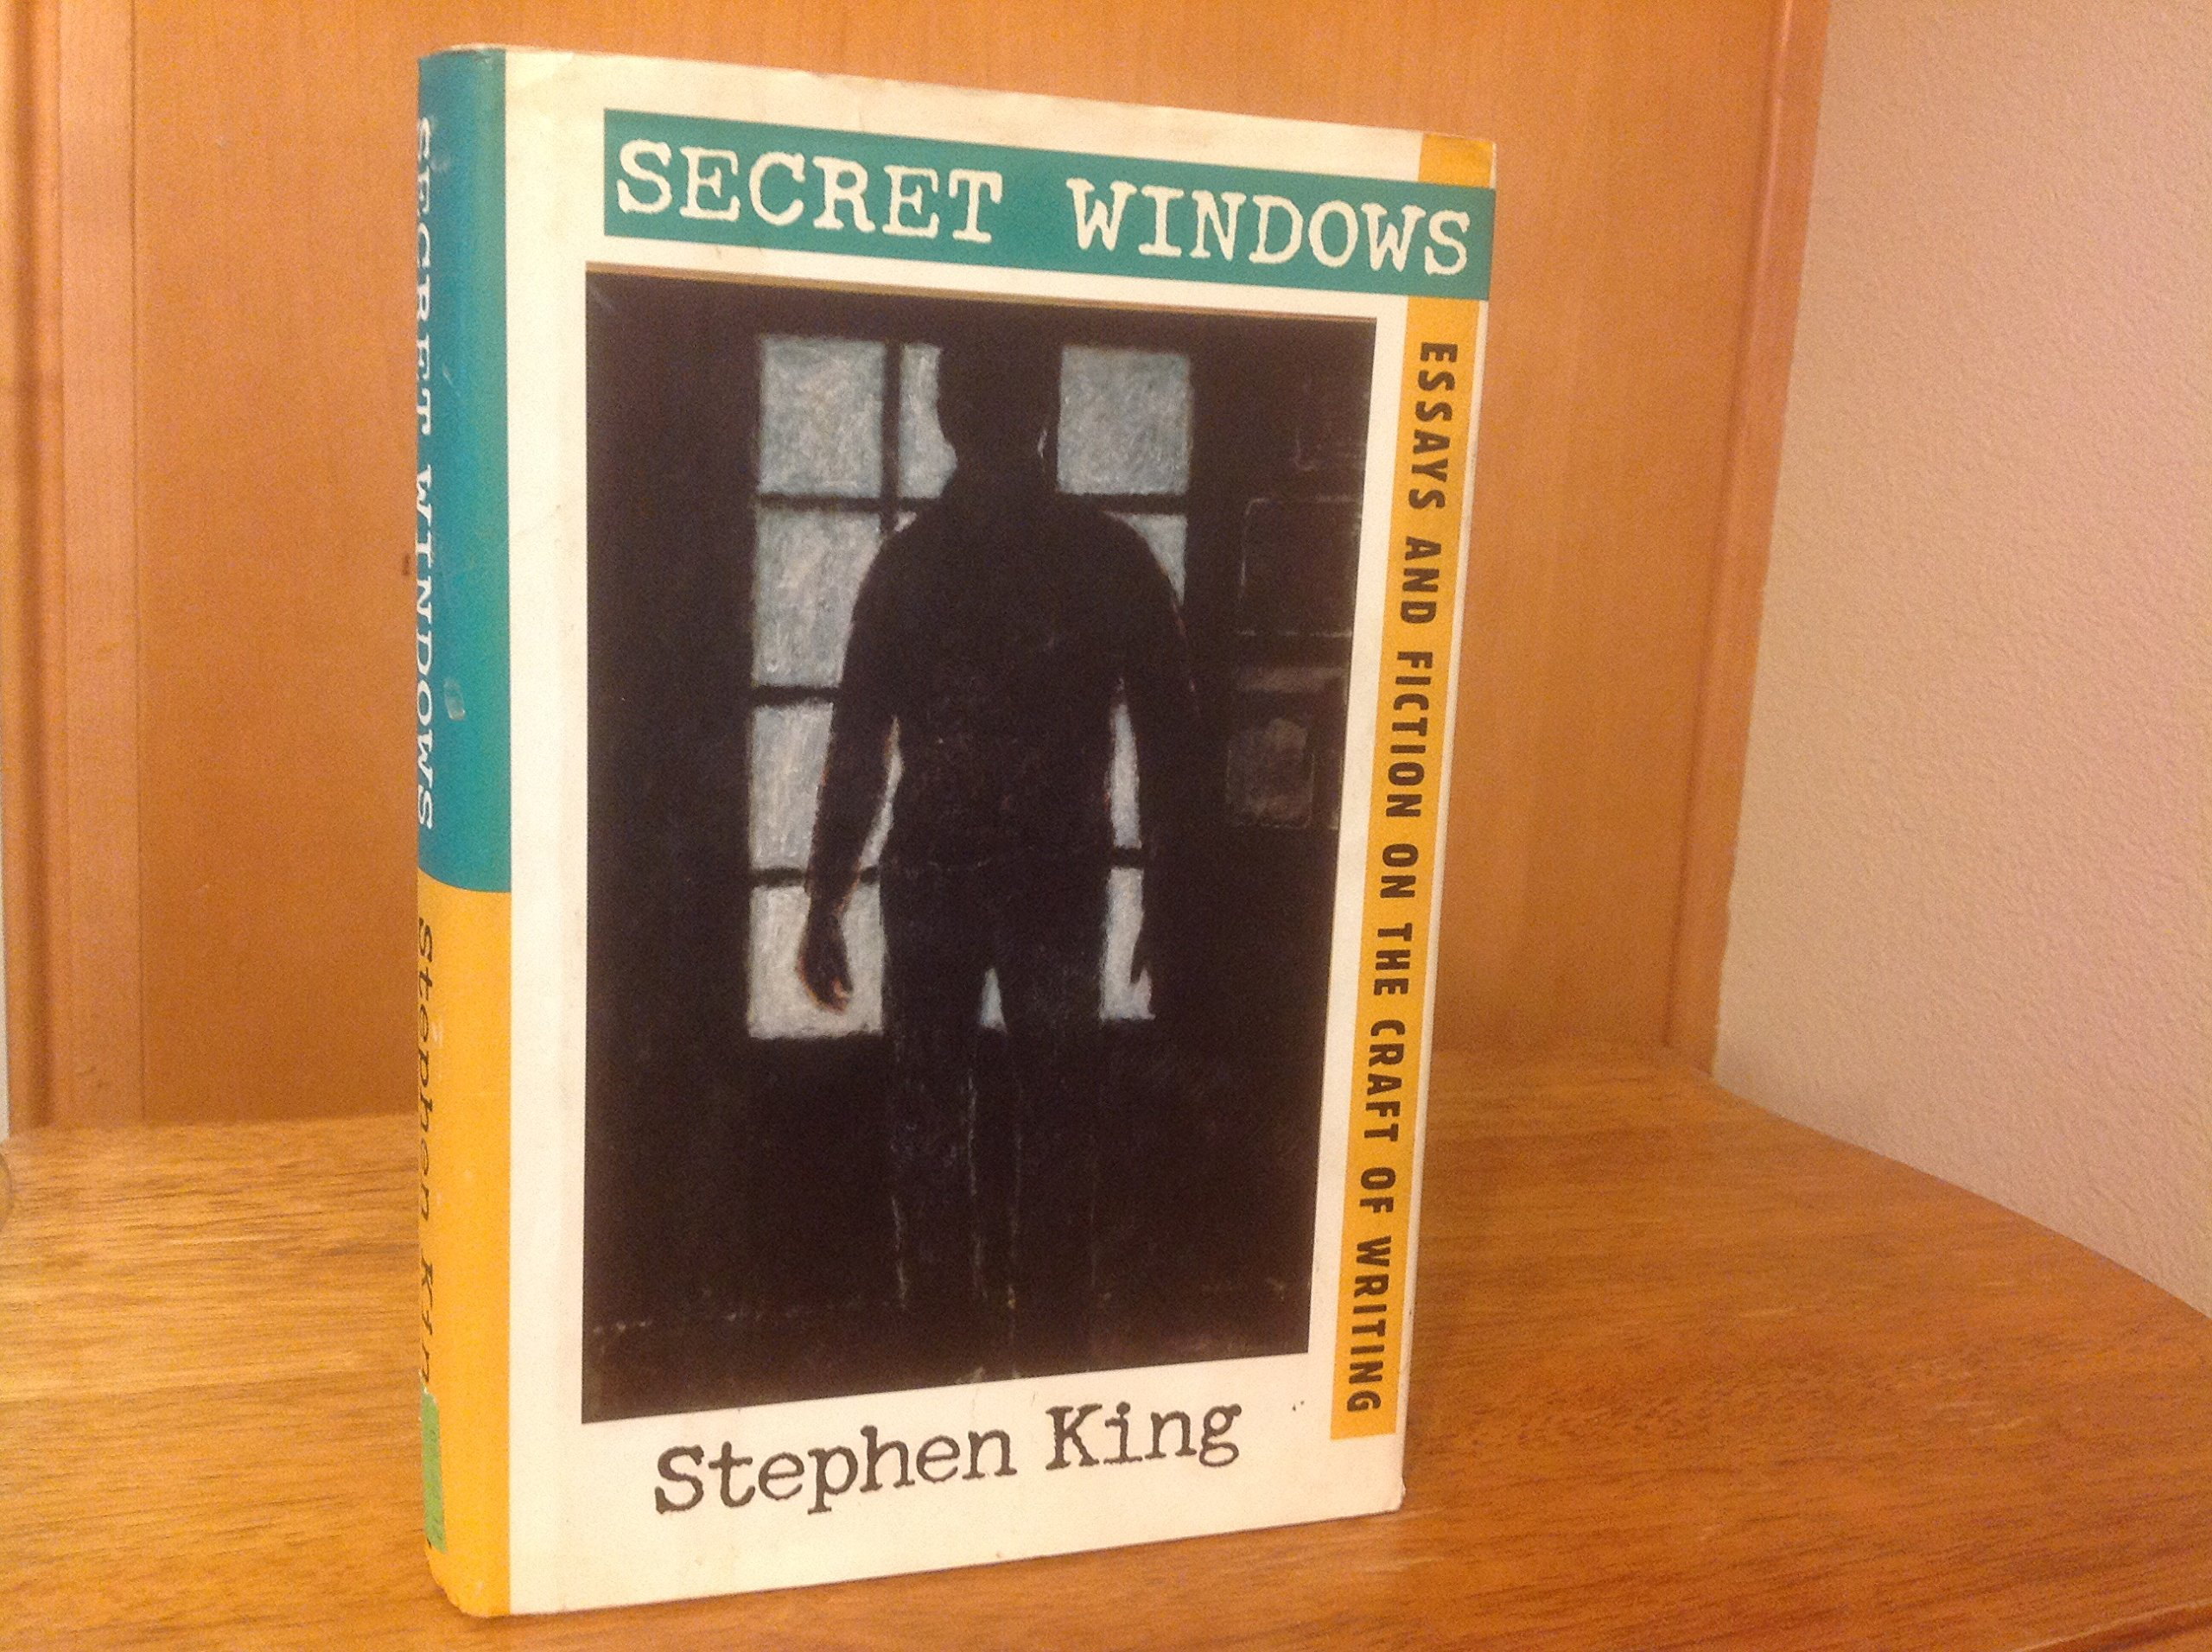 secret windows essays and fiction on the craft of writing secret windows essays and fiction on the craft of writing stephen king peter straub 9780965006439 amazon com books